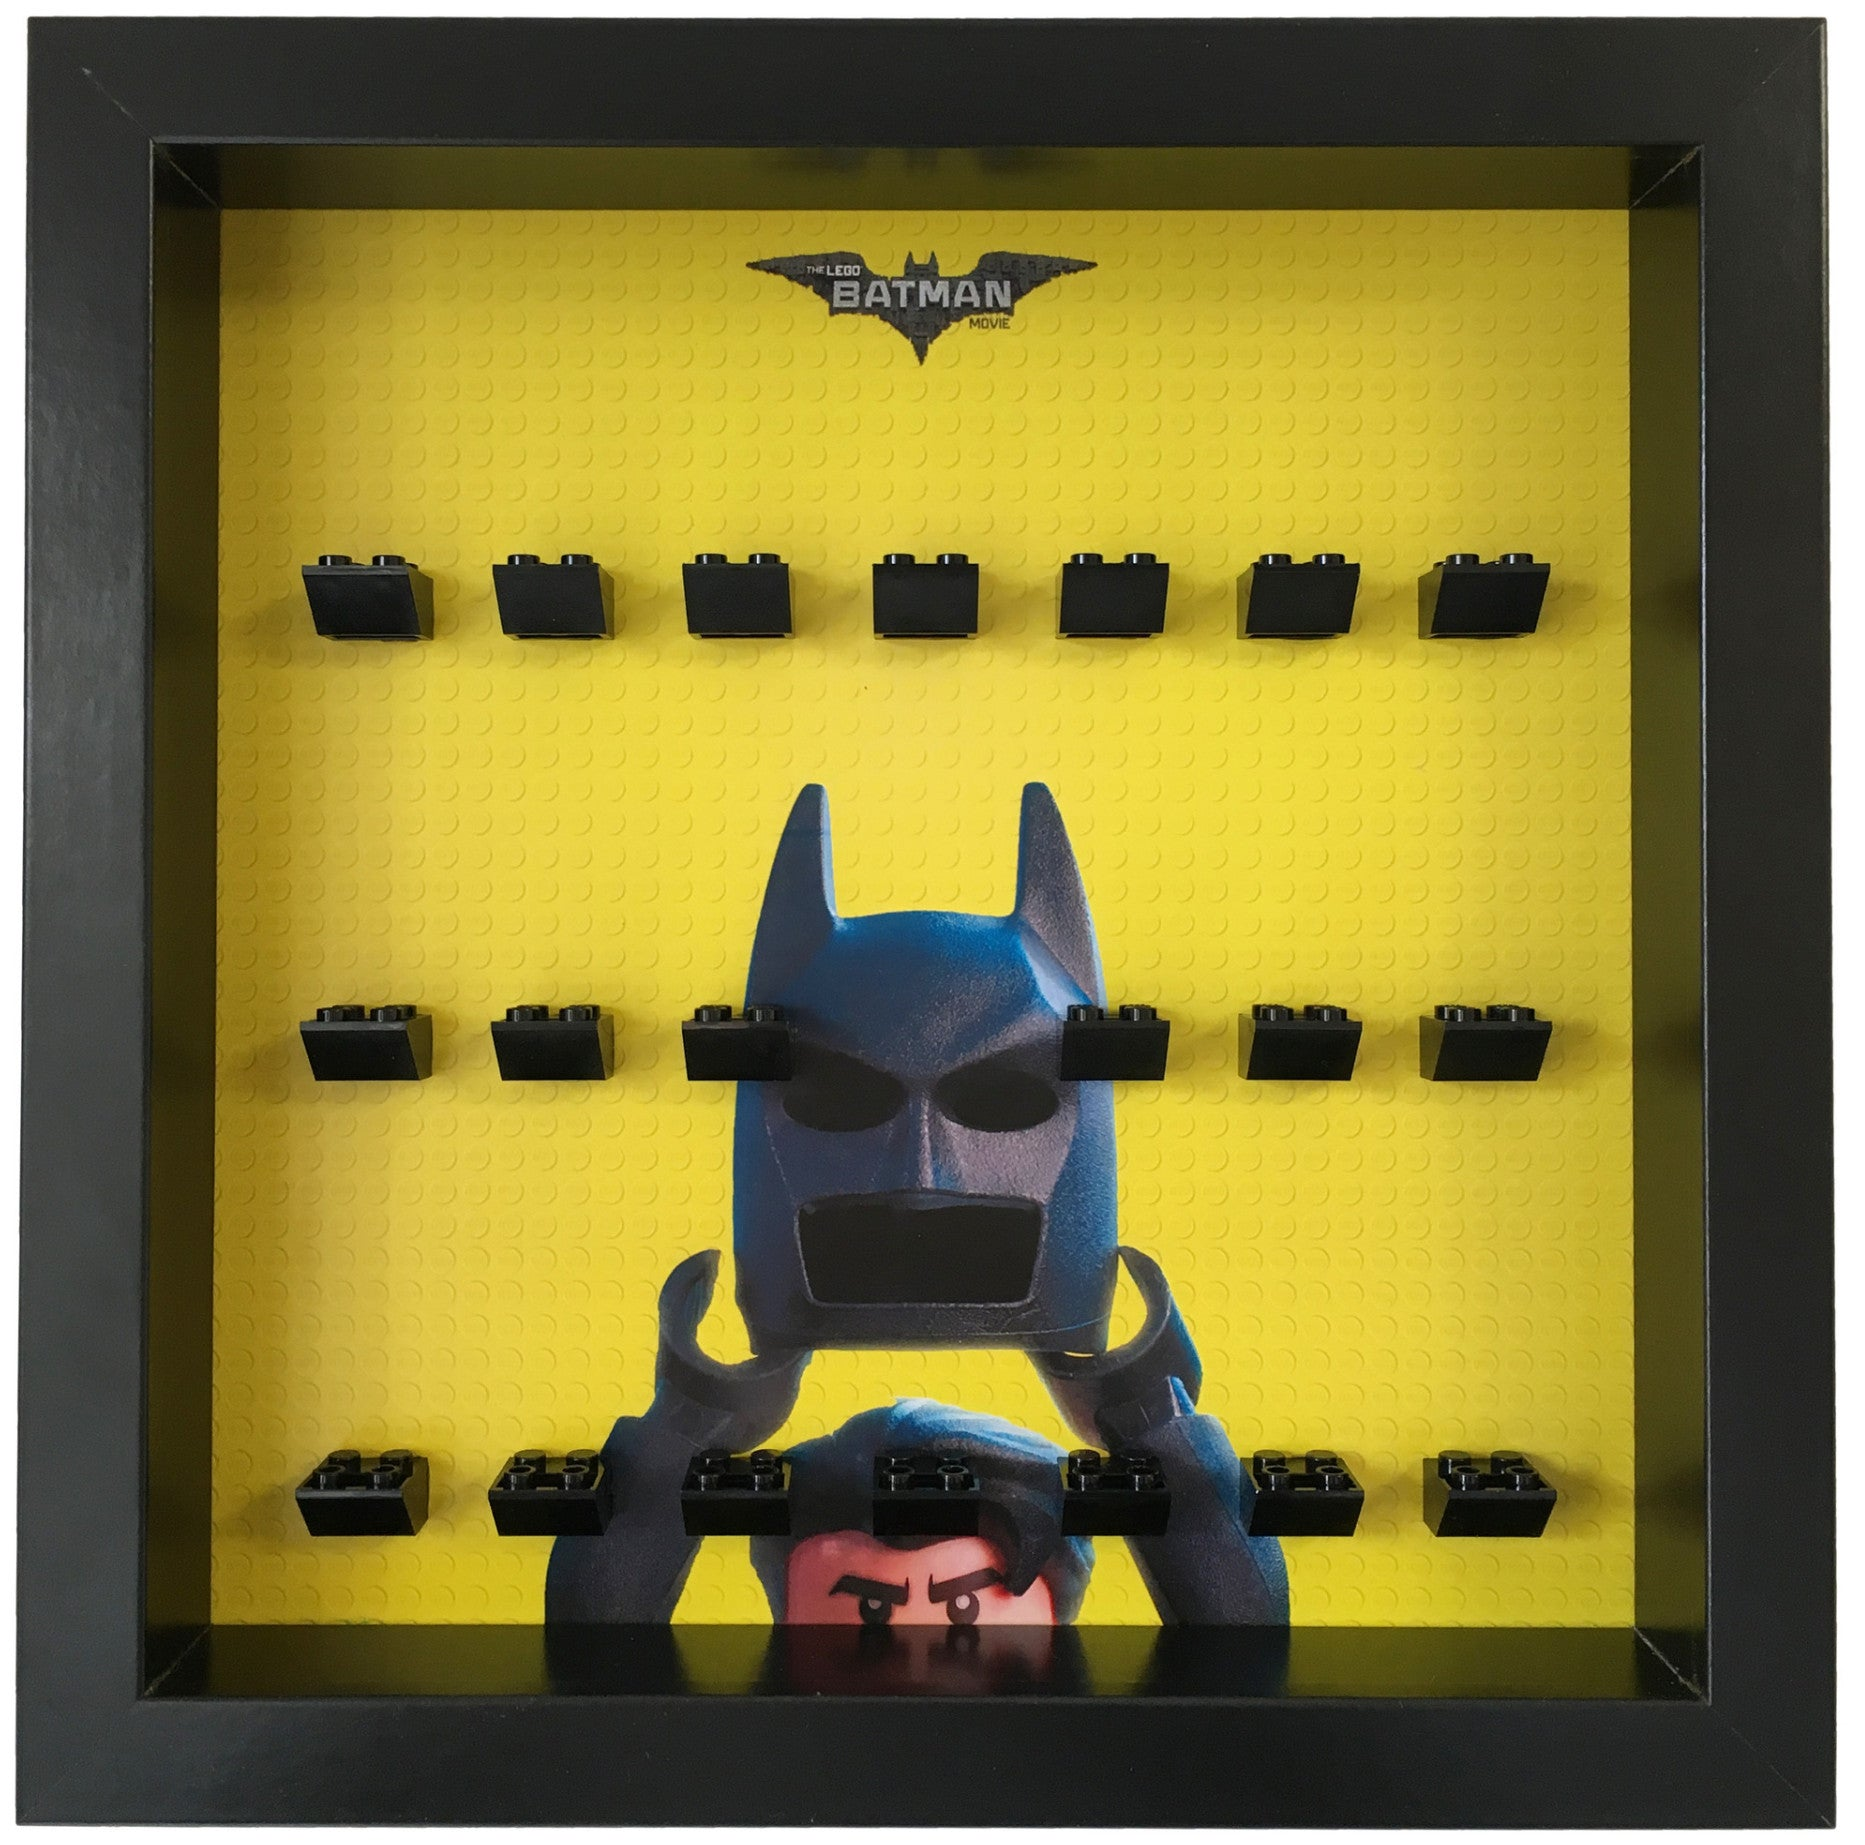 Display Frame For The Batman Movie Minifigures Display Frames For Lego Minifigures